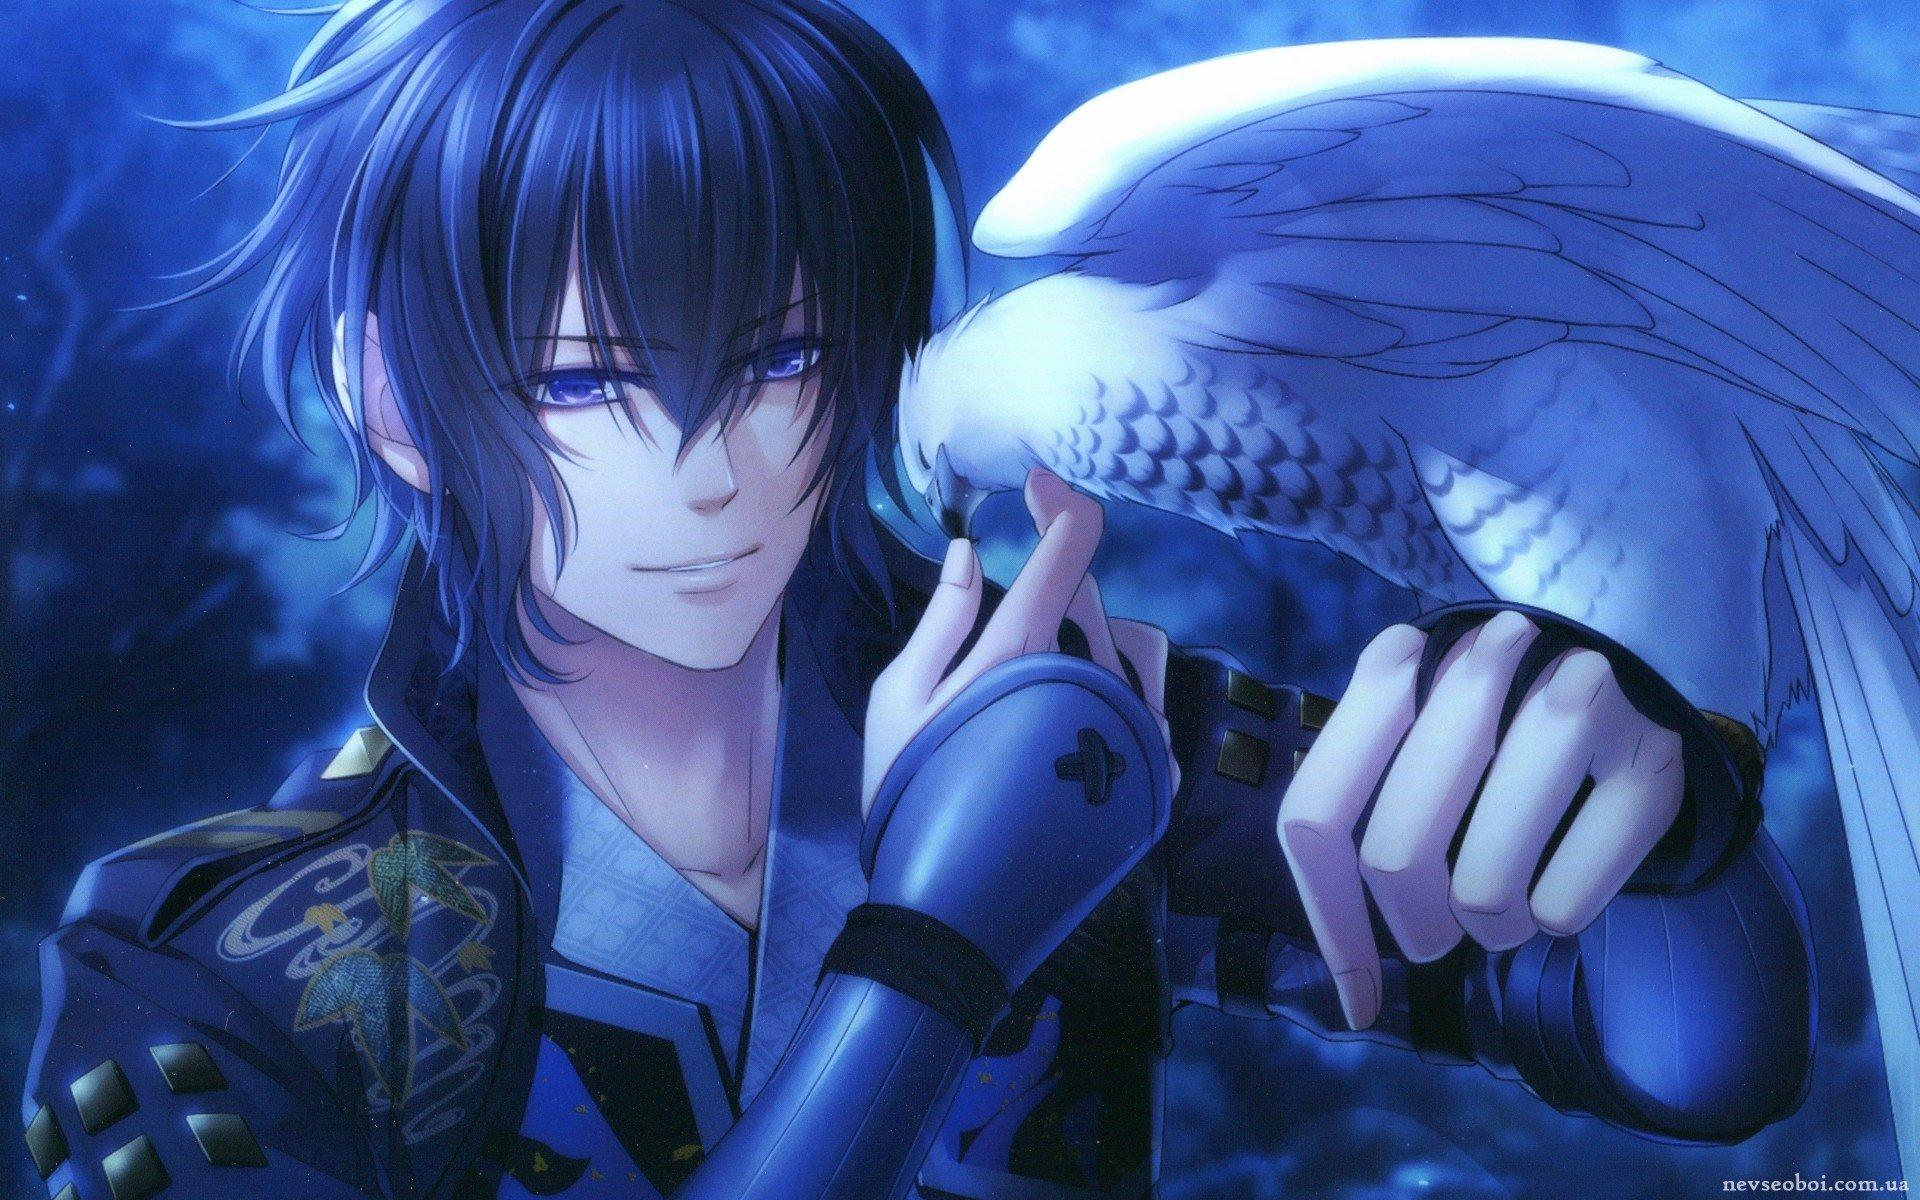 Bad Boy Anime Guys Wallpapers Wallpaper Cave